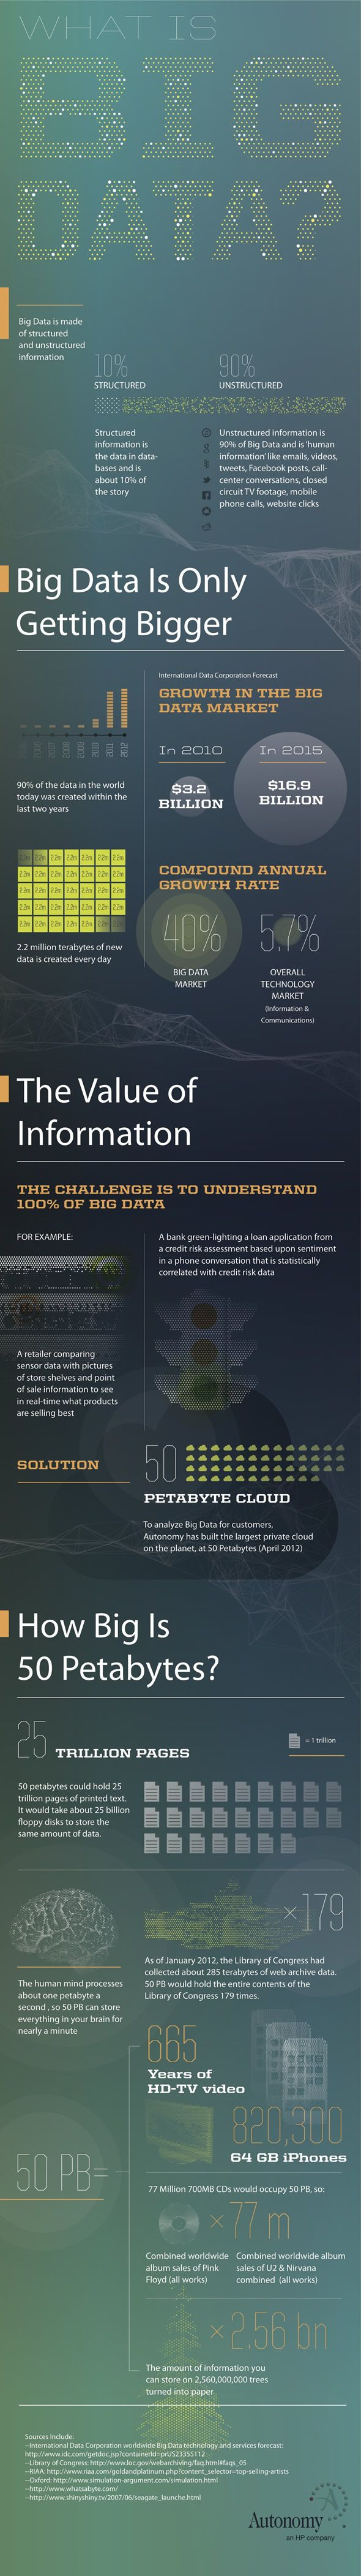 "What is Big Data? ""The challenge is to understand 100% of big data"""